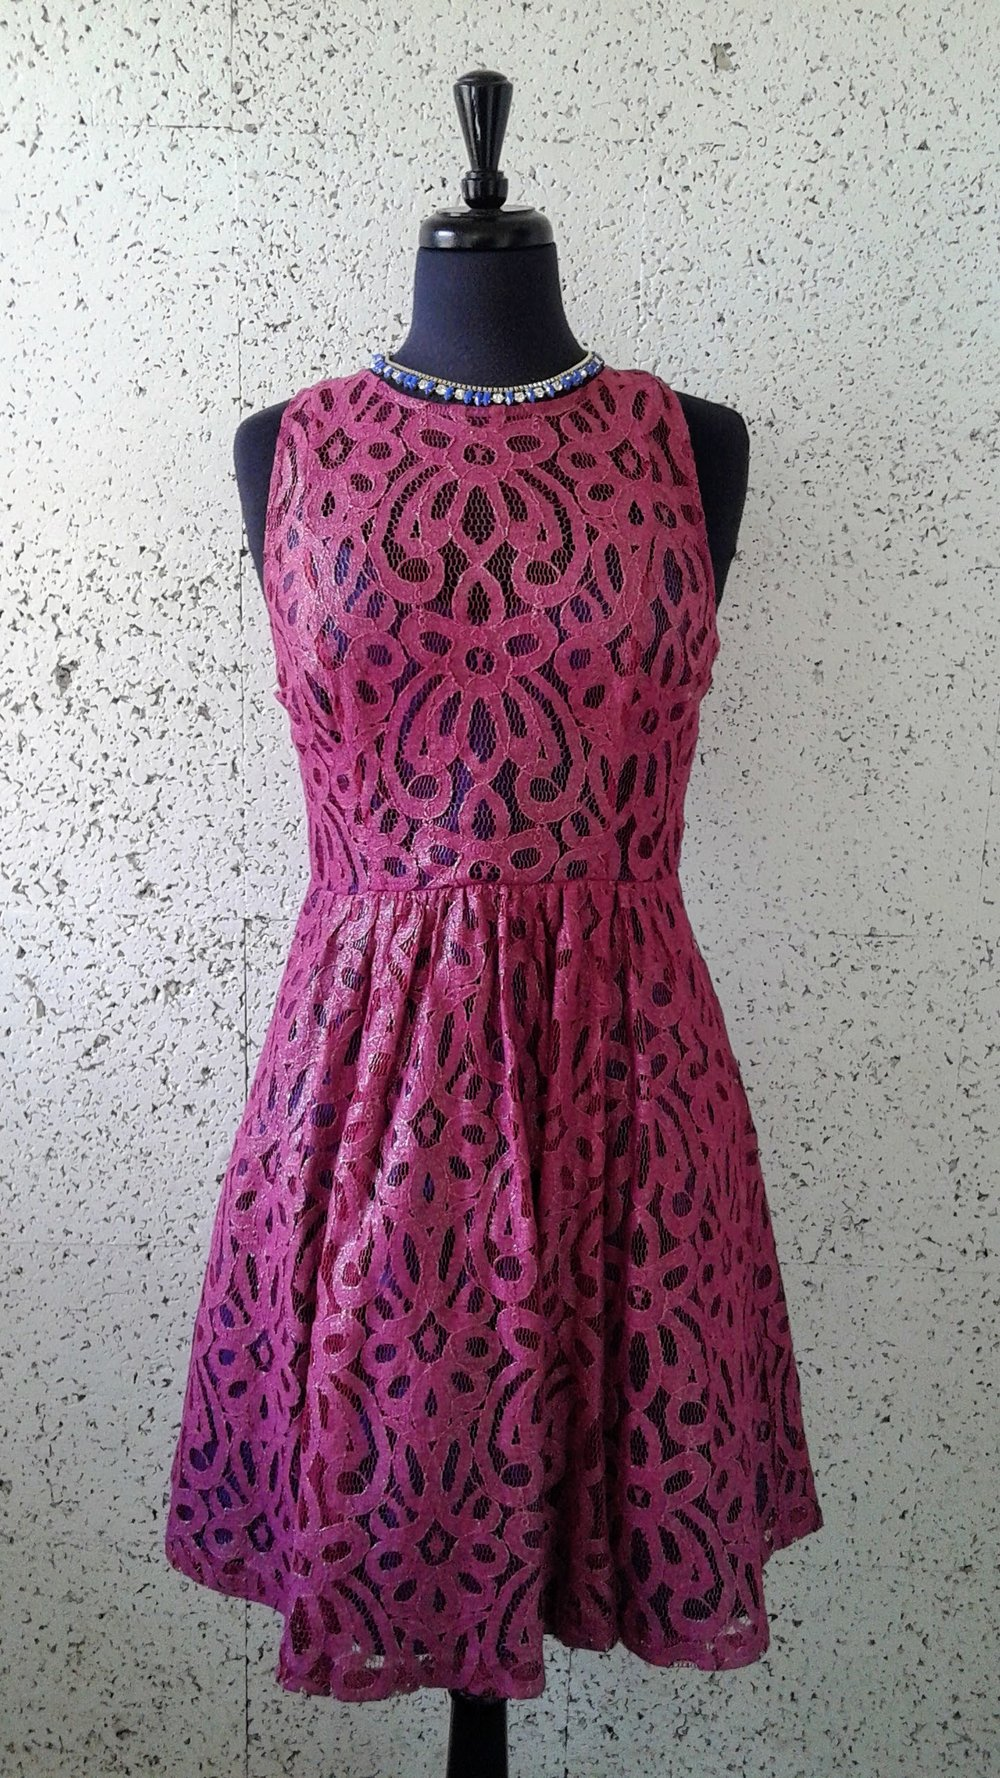 Tracy Reese dress; Size 6, $32